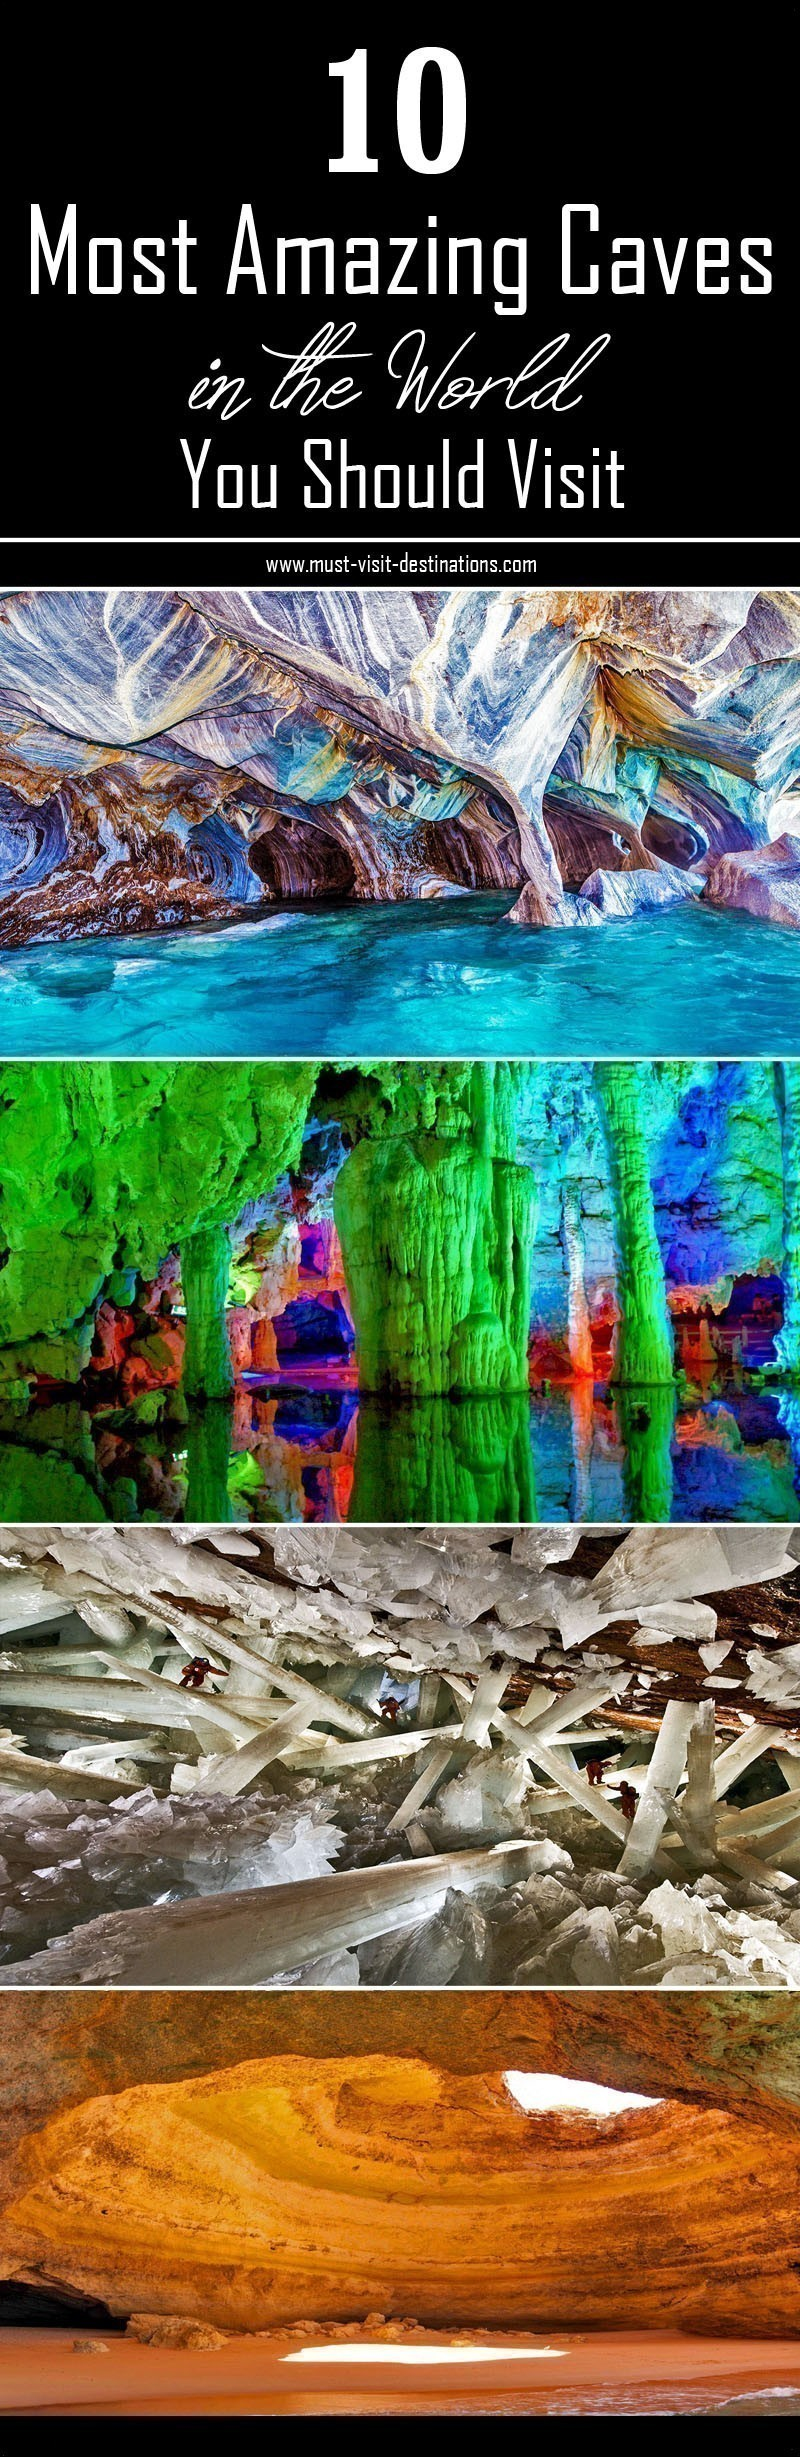 10 Most Amazing Caves in the World You Should Visit #travel #culture